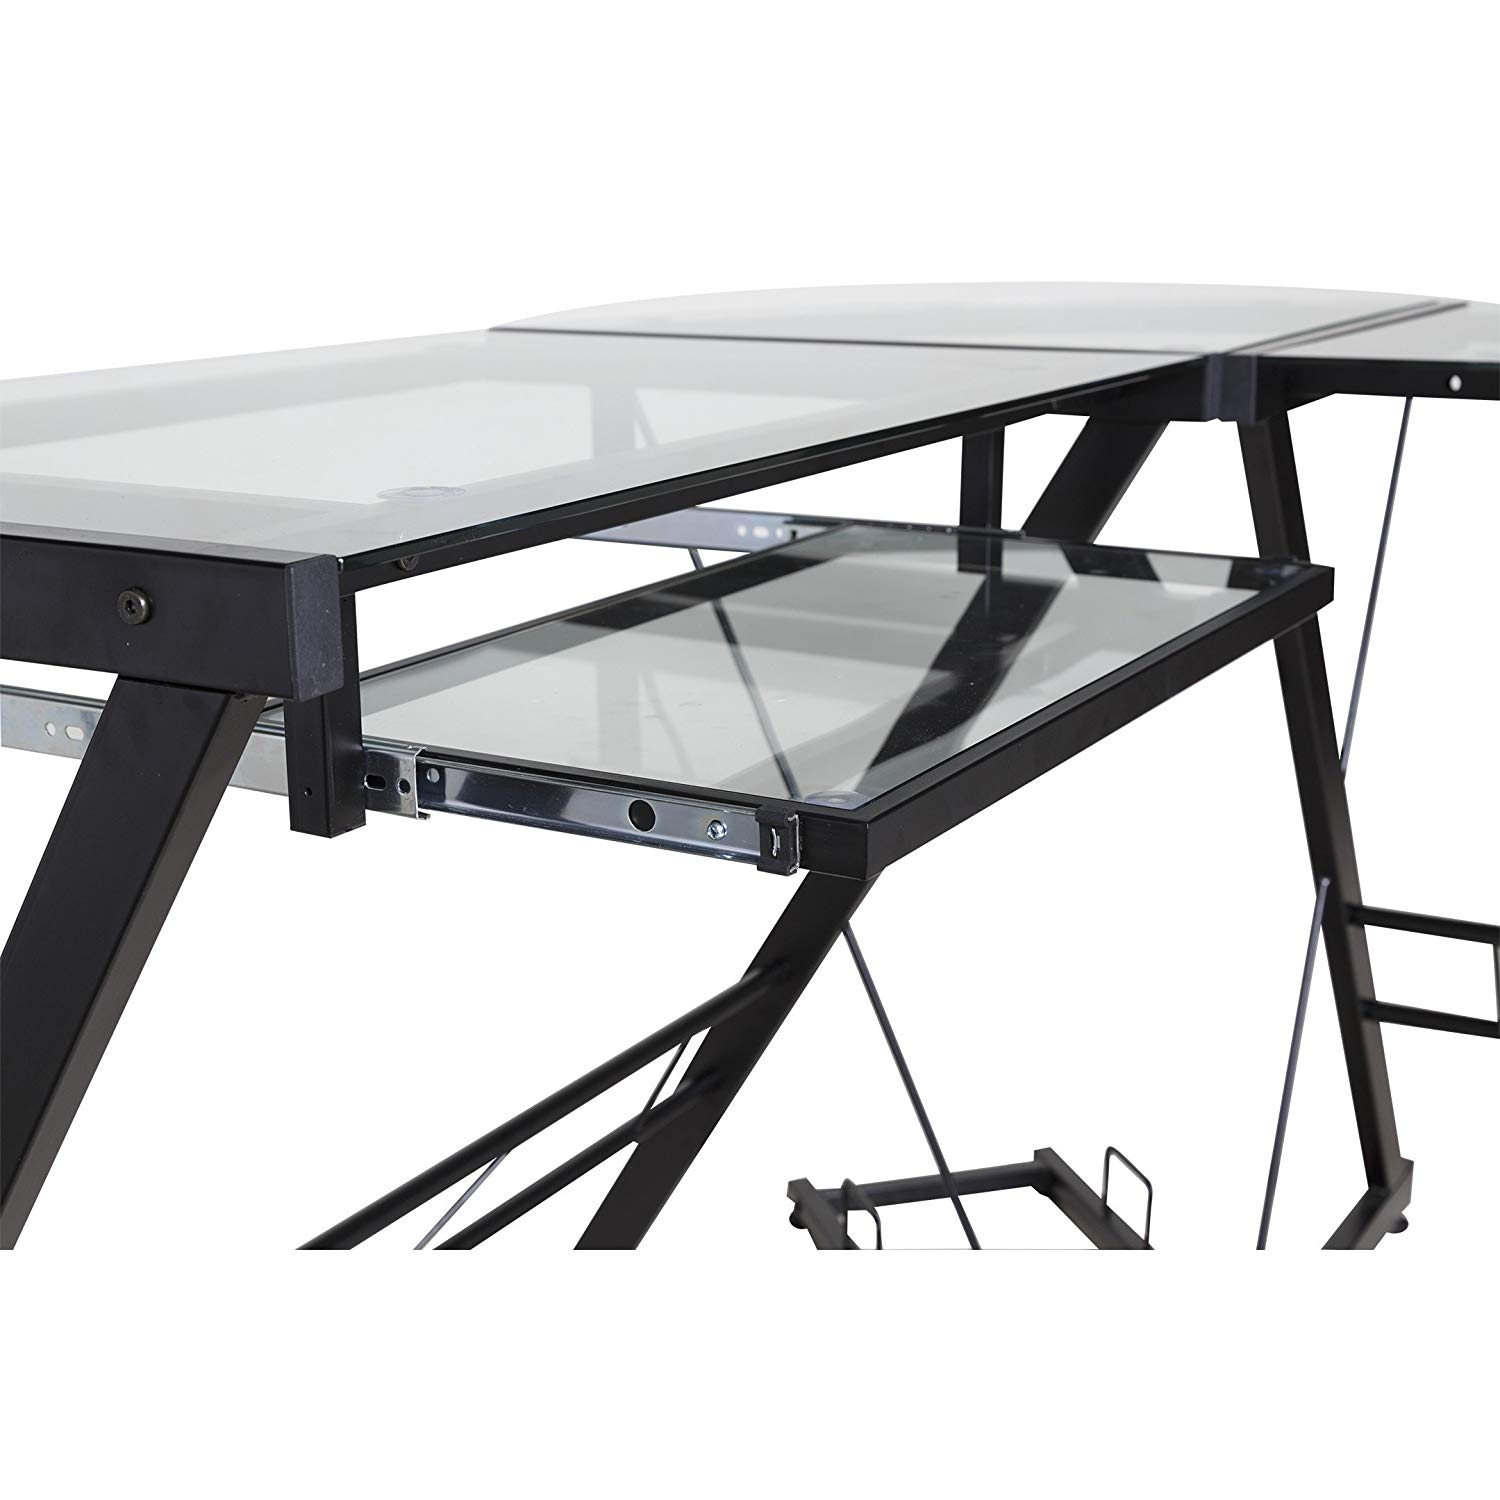 MyEasyShopping 50-JN110500 Black and Clear Glass L-shape Desk with Pull-out Keyboard Tray Desk L Glass Shape Computer Office